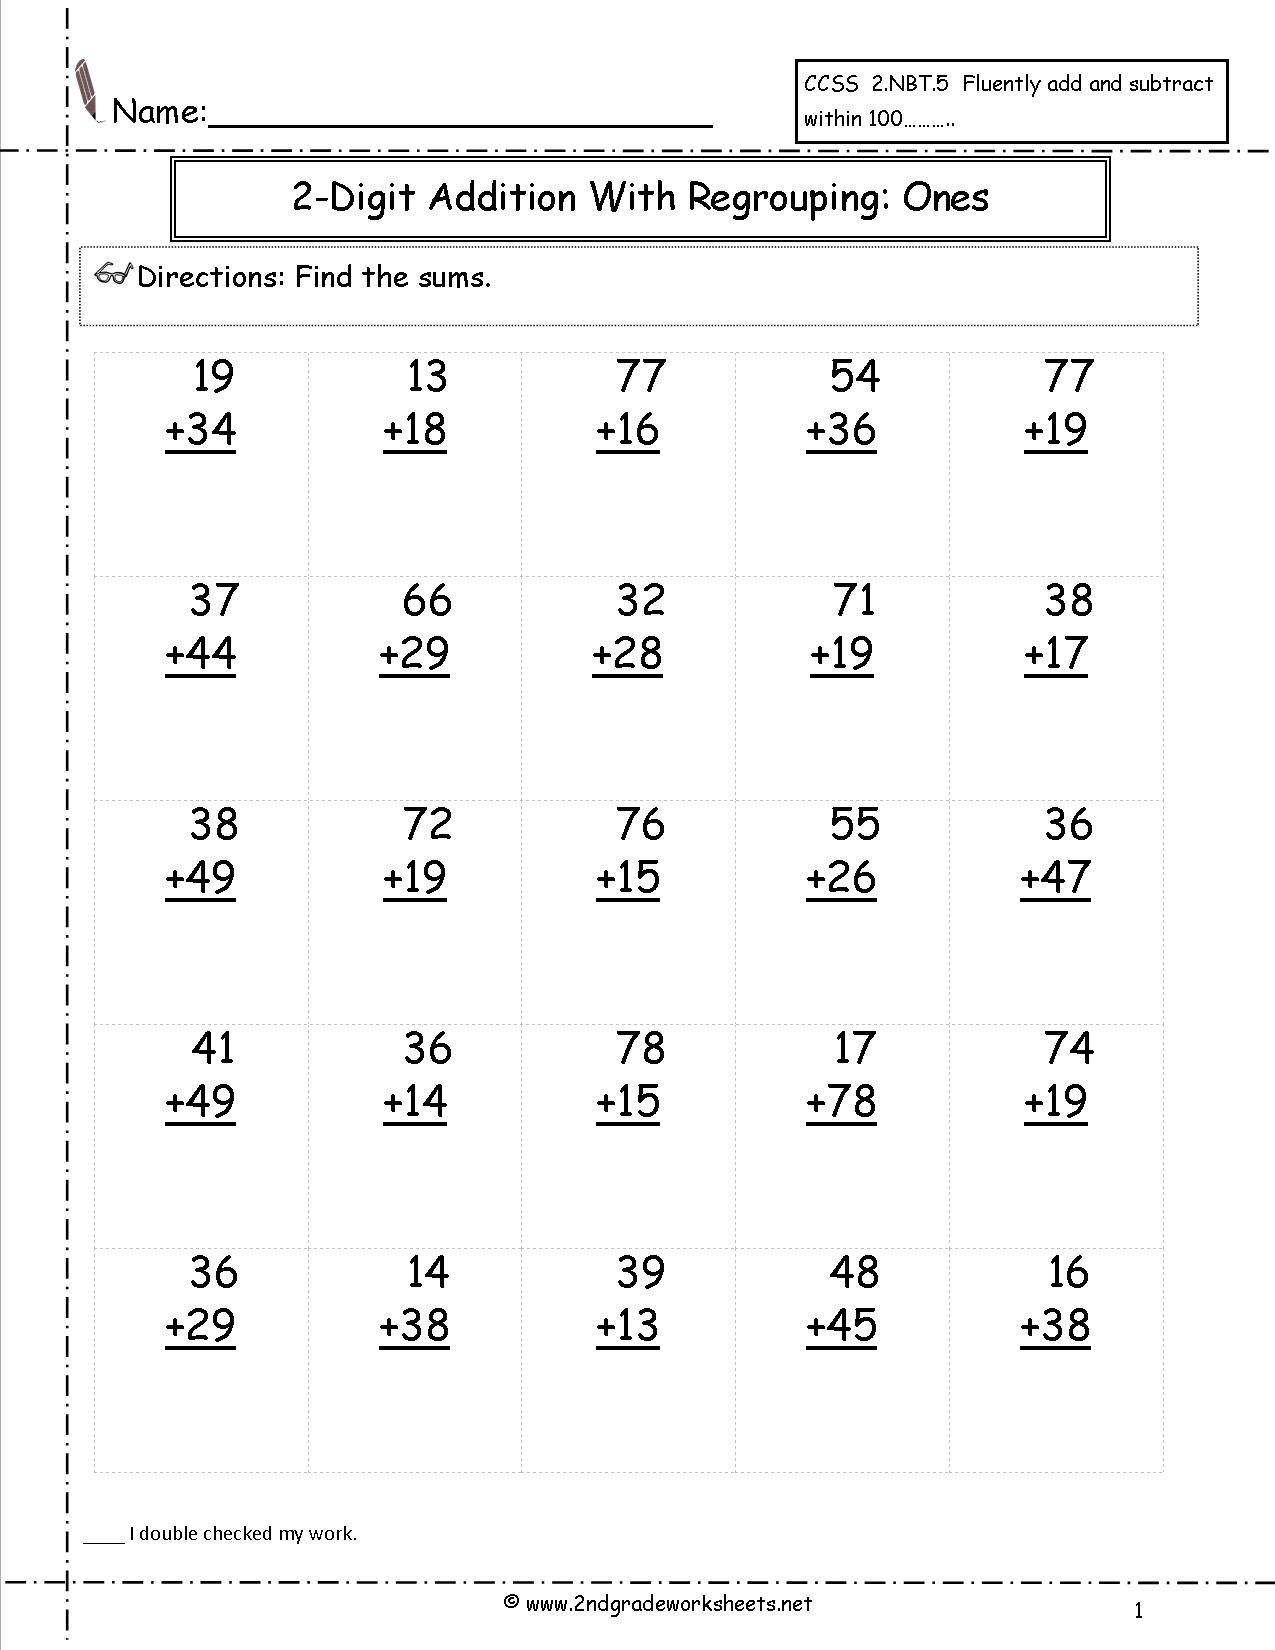 Free Worksheet Printouts The Best Worksheets Image Collection